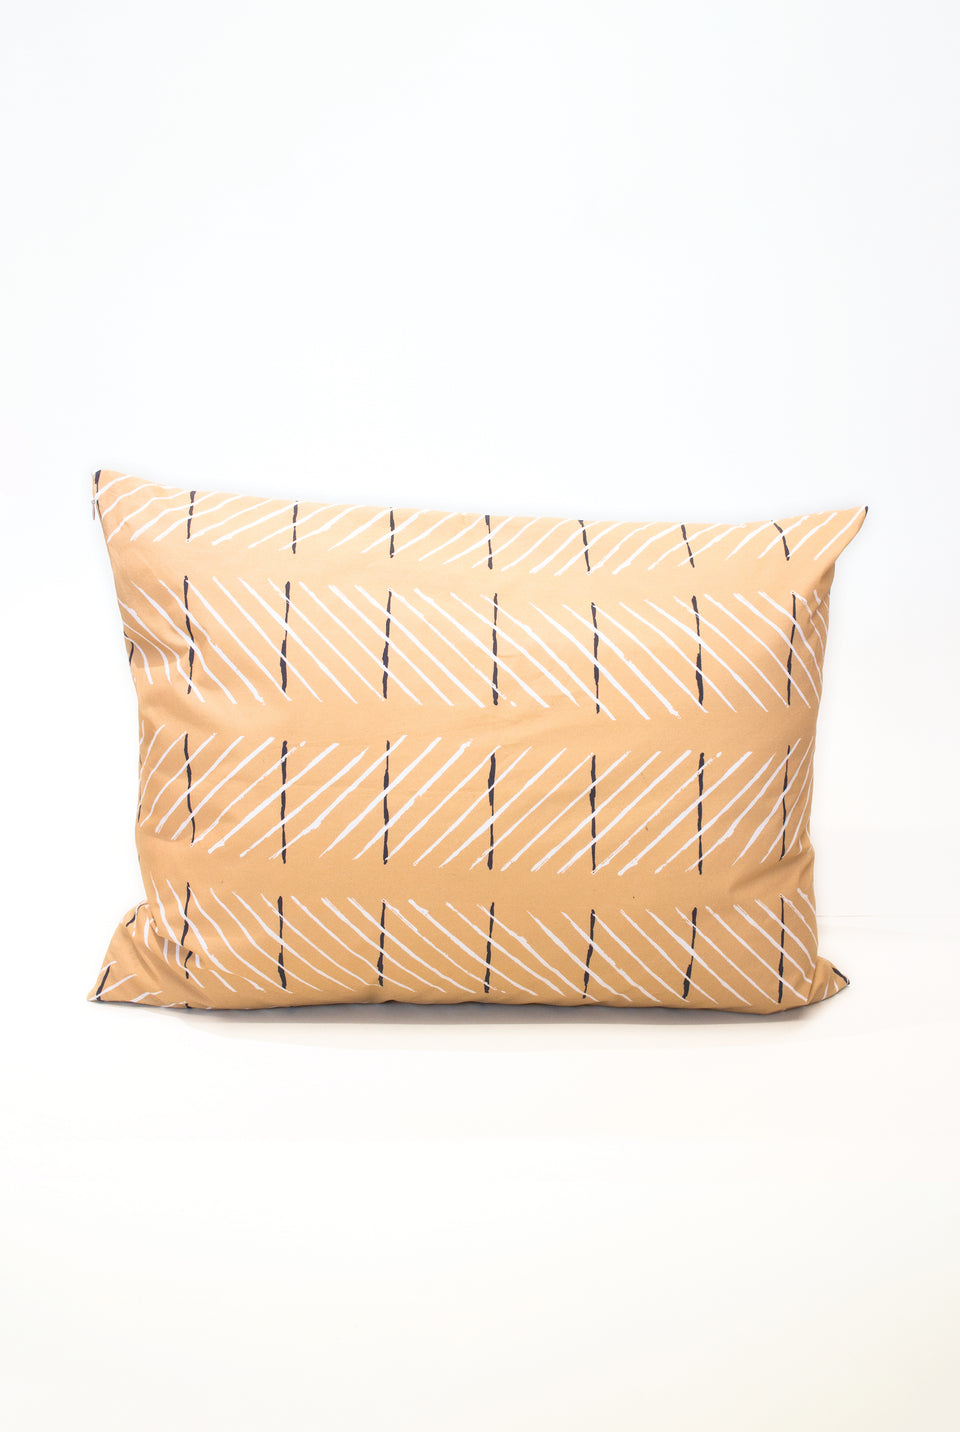 Samuji Koti Pillow Case Risuaita 65x50 cm 100% cotton